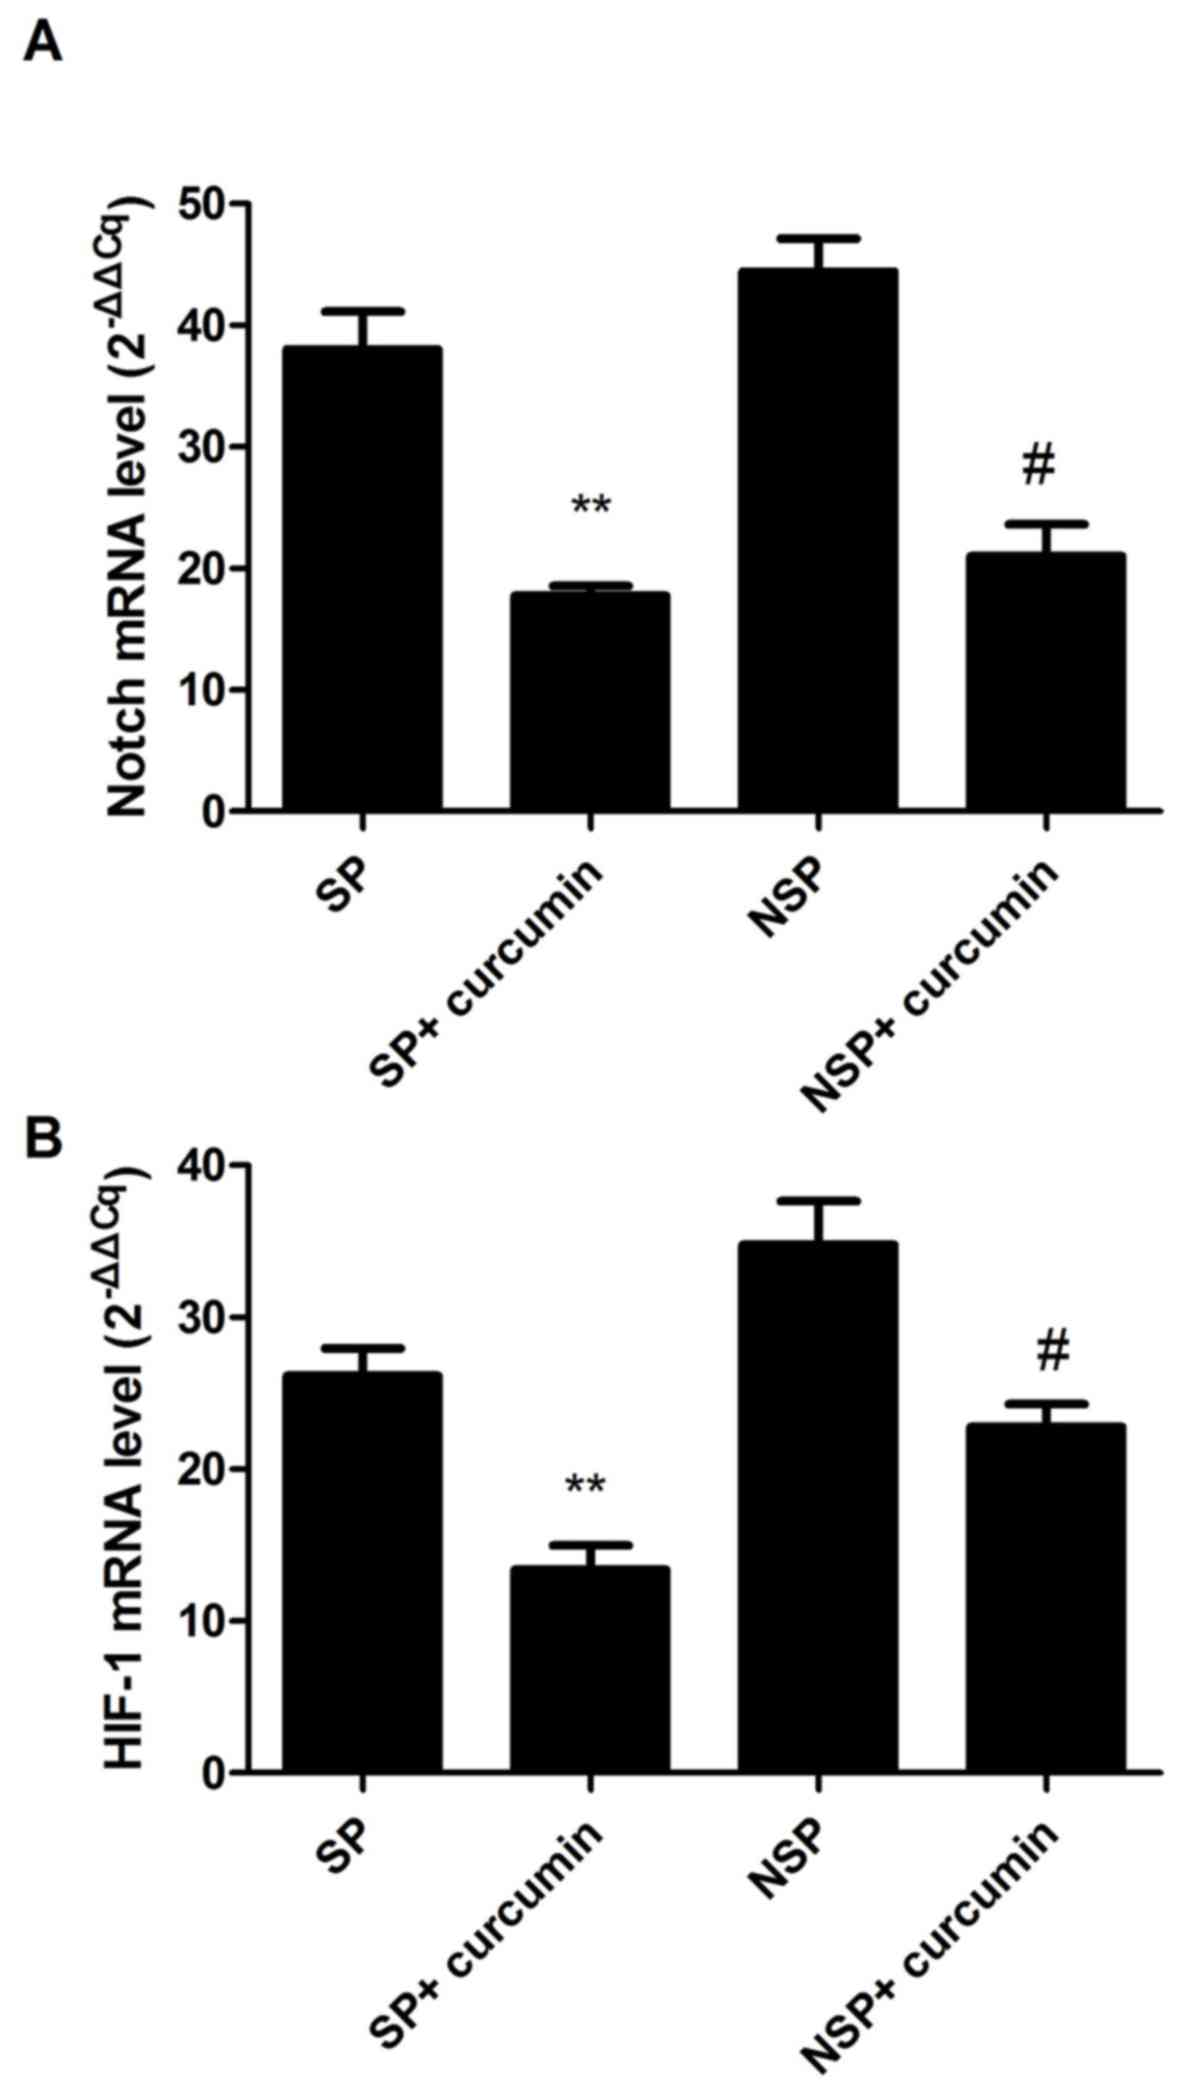 Anticancer effects of curcumin on nude mice bearing lung